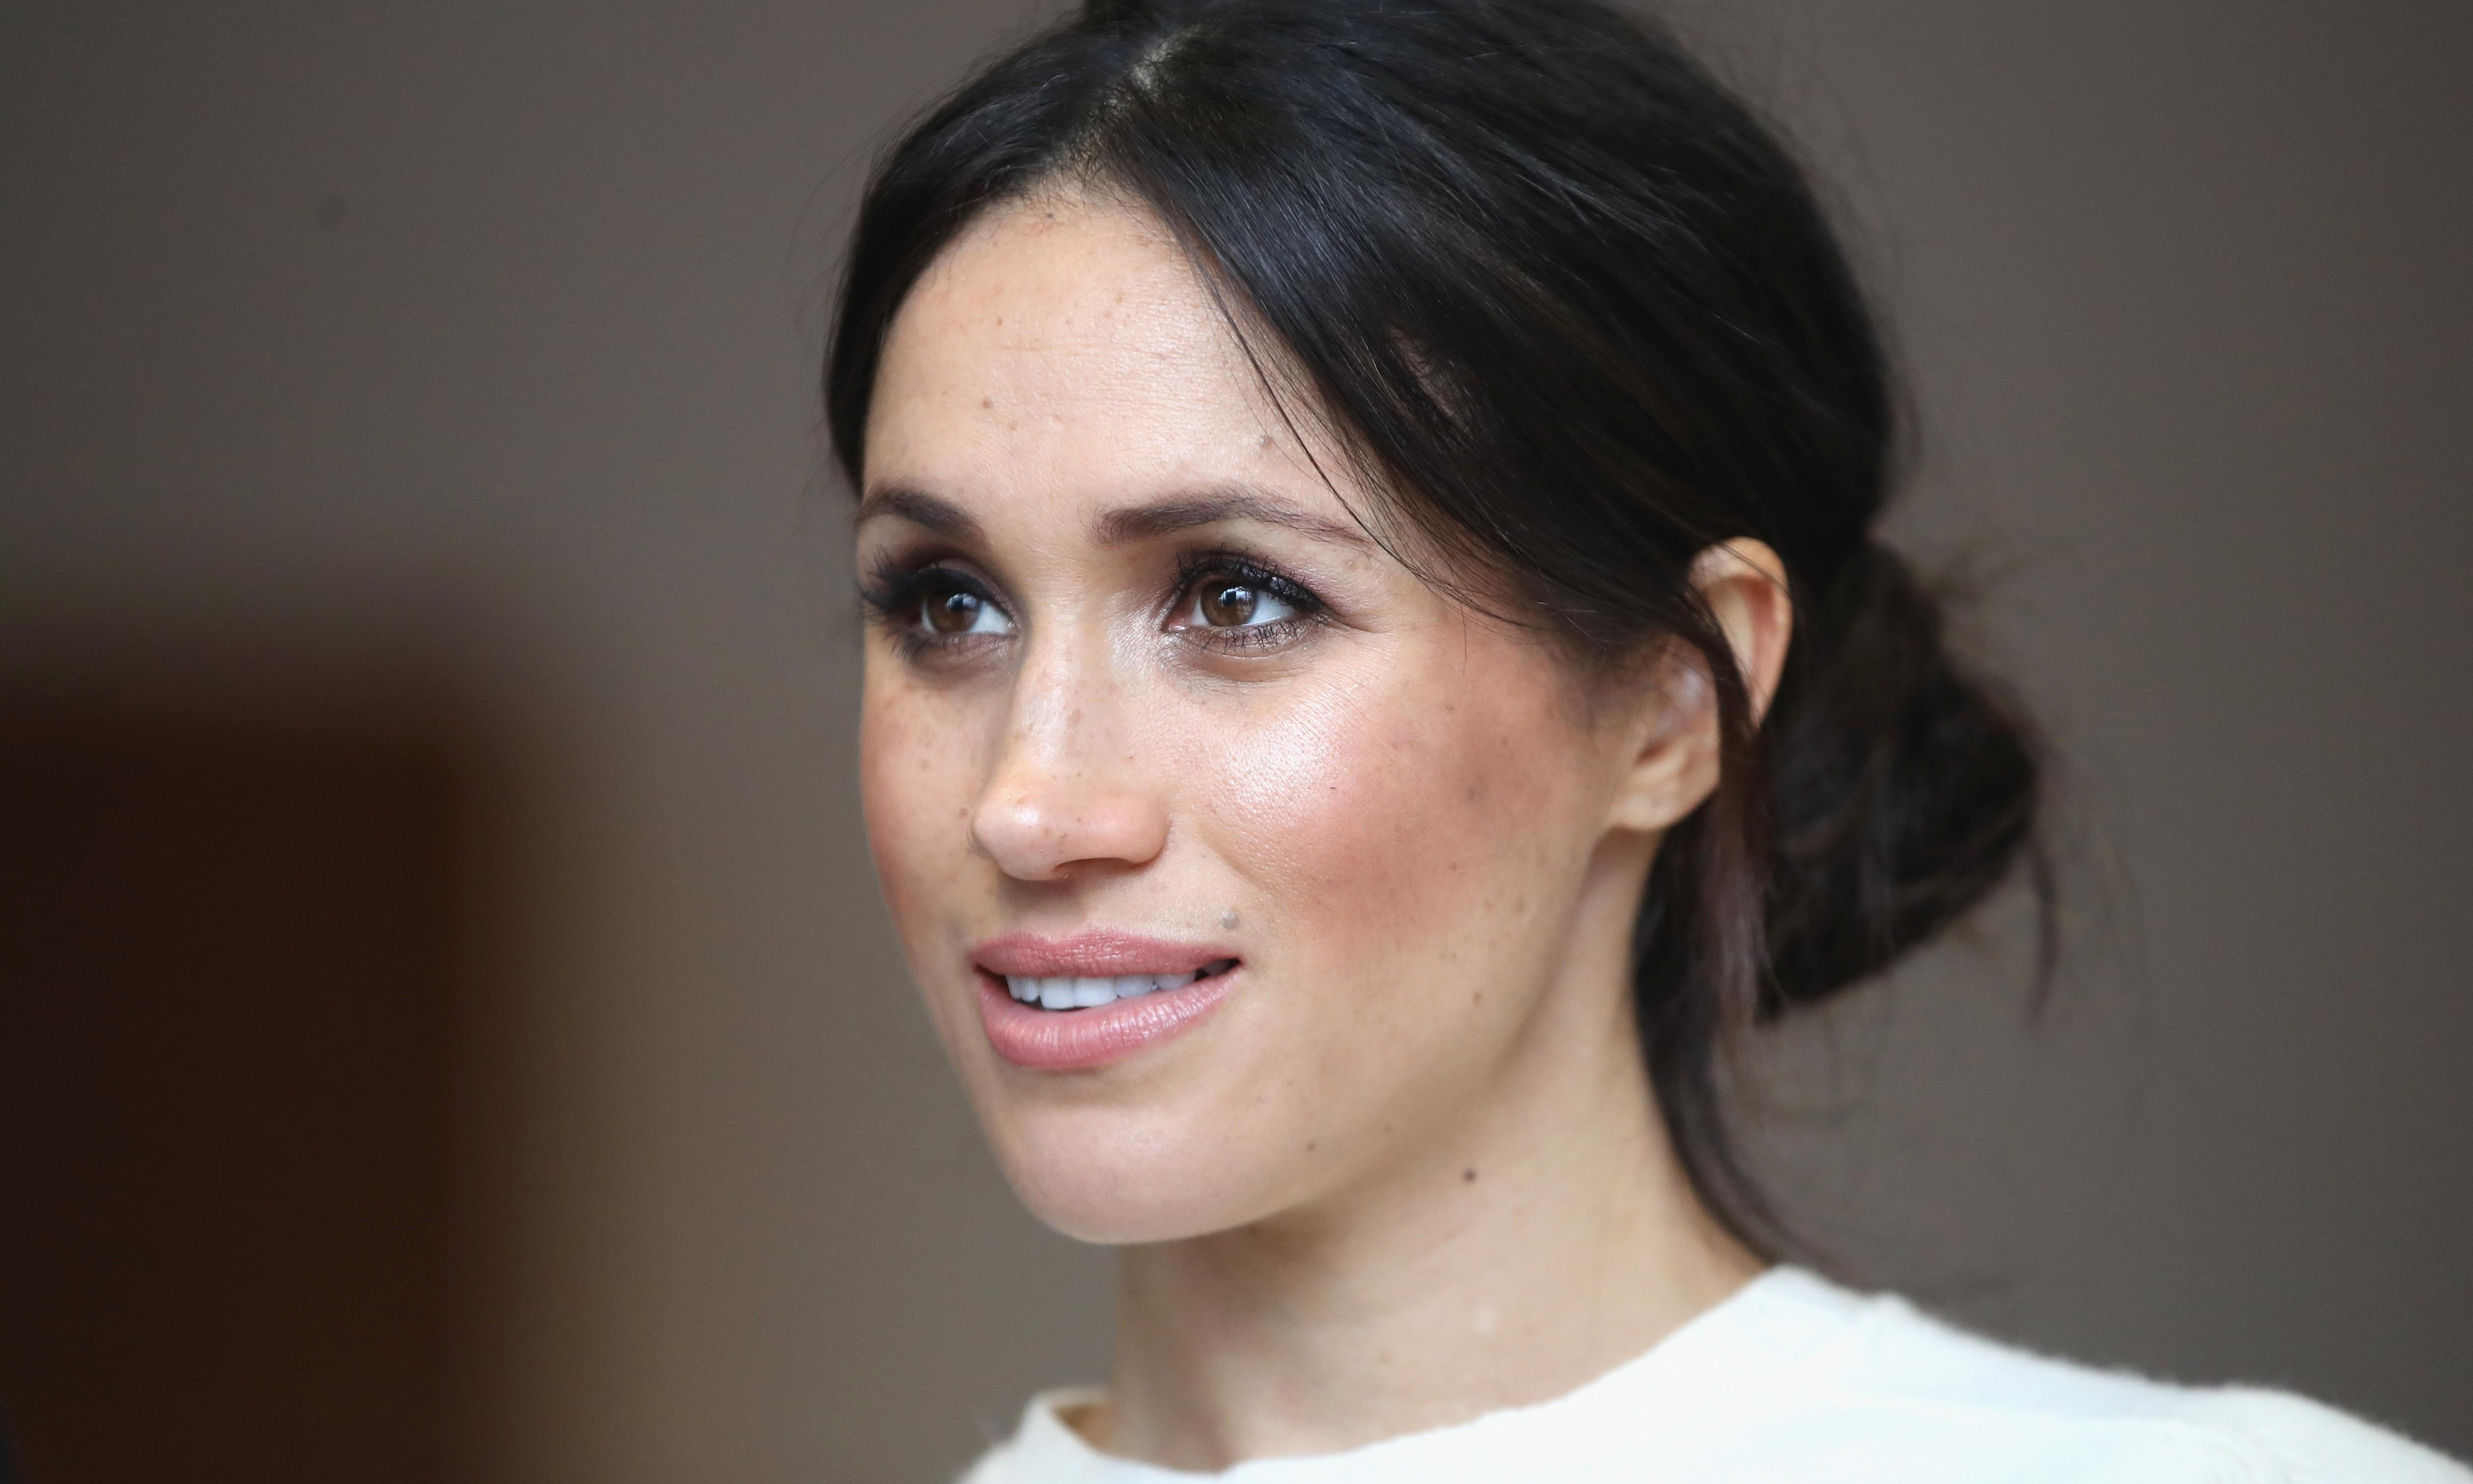 Hair to the throne: Meghan's messy bun is perfect for a modern princess